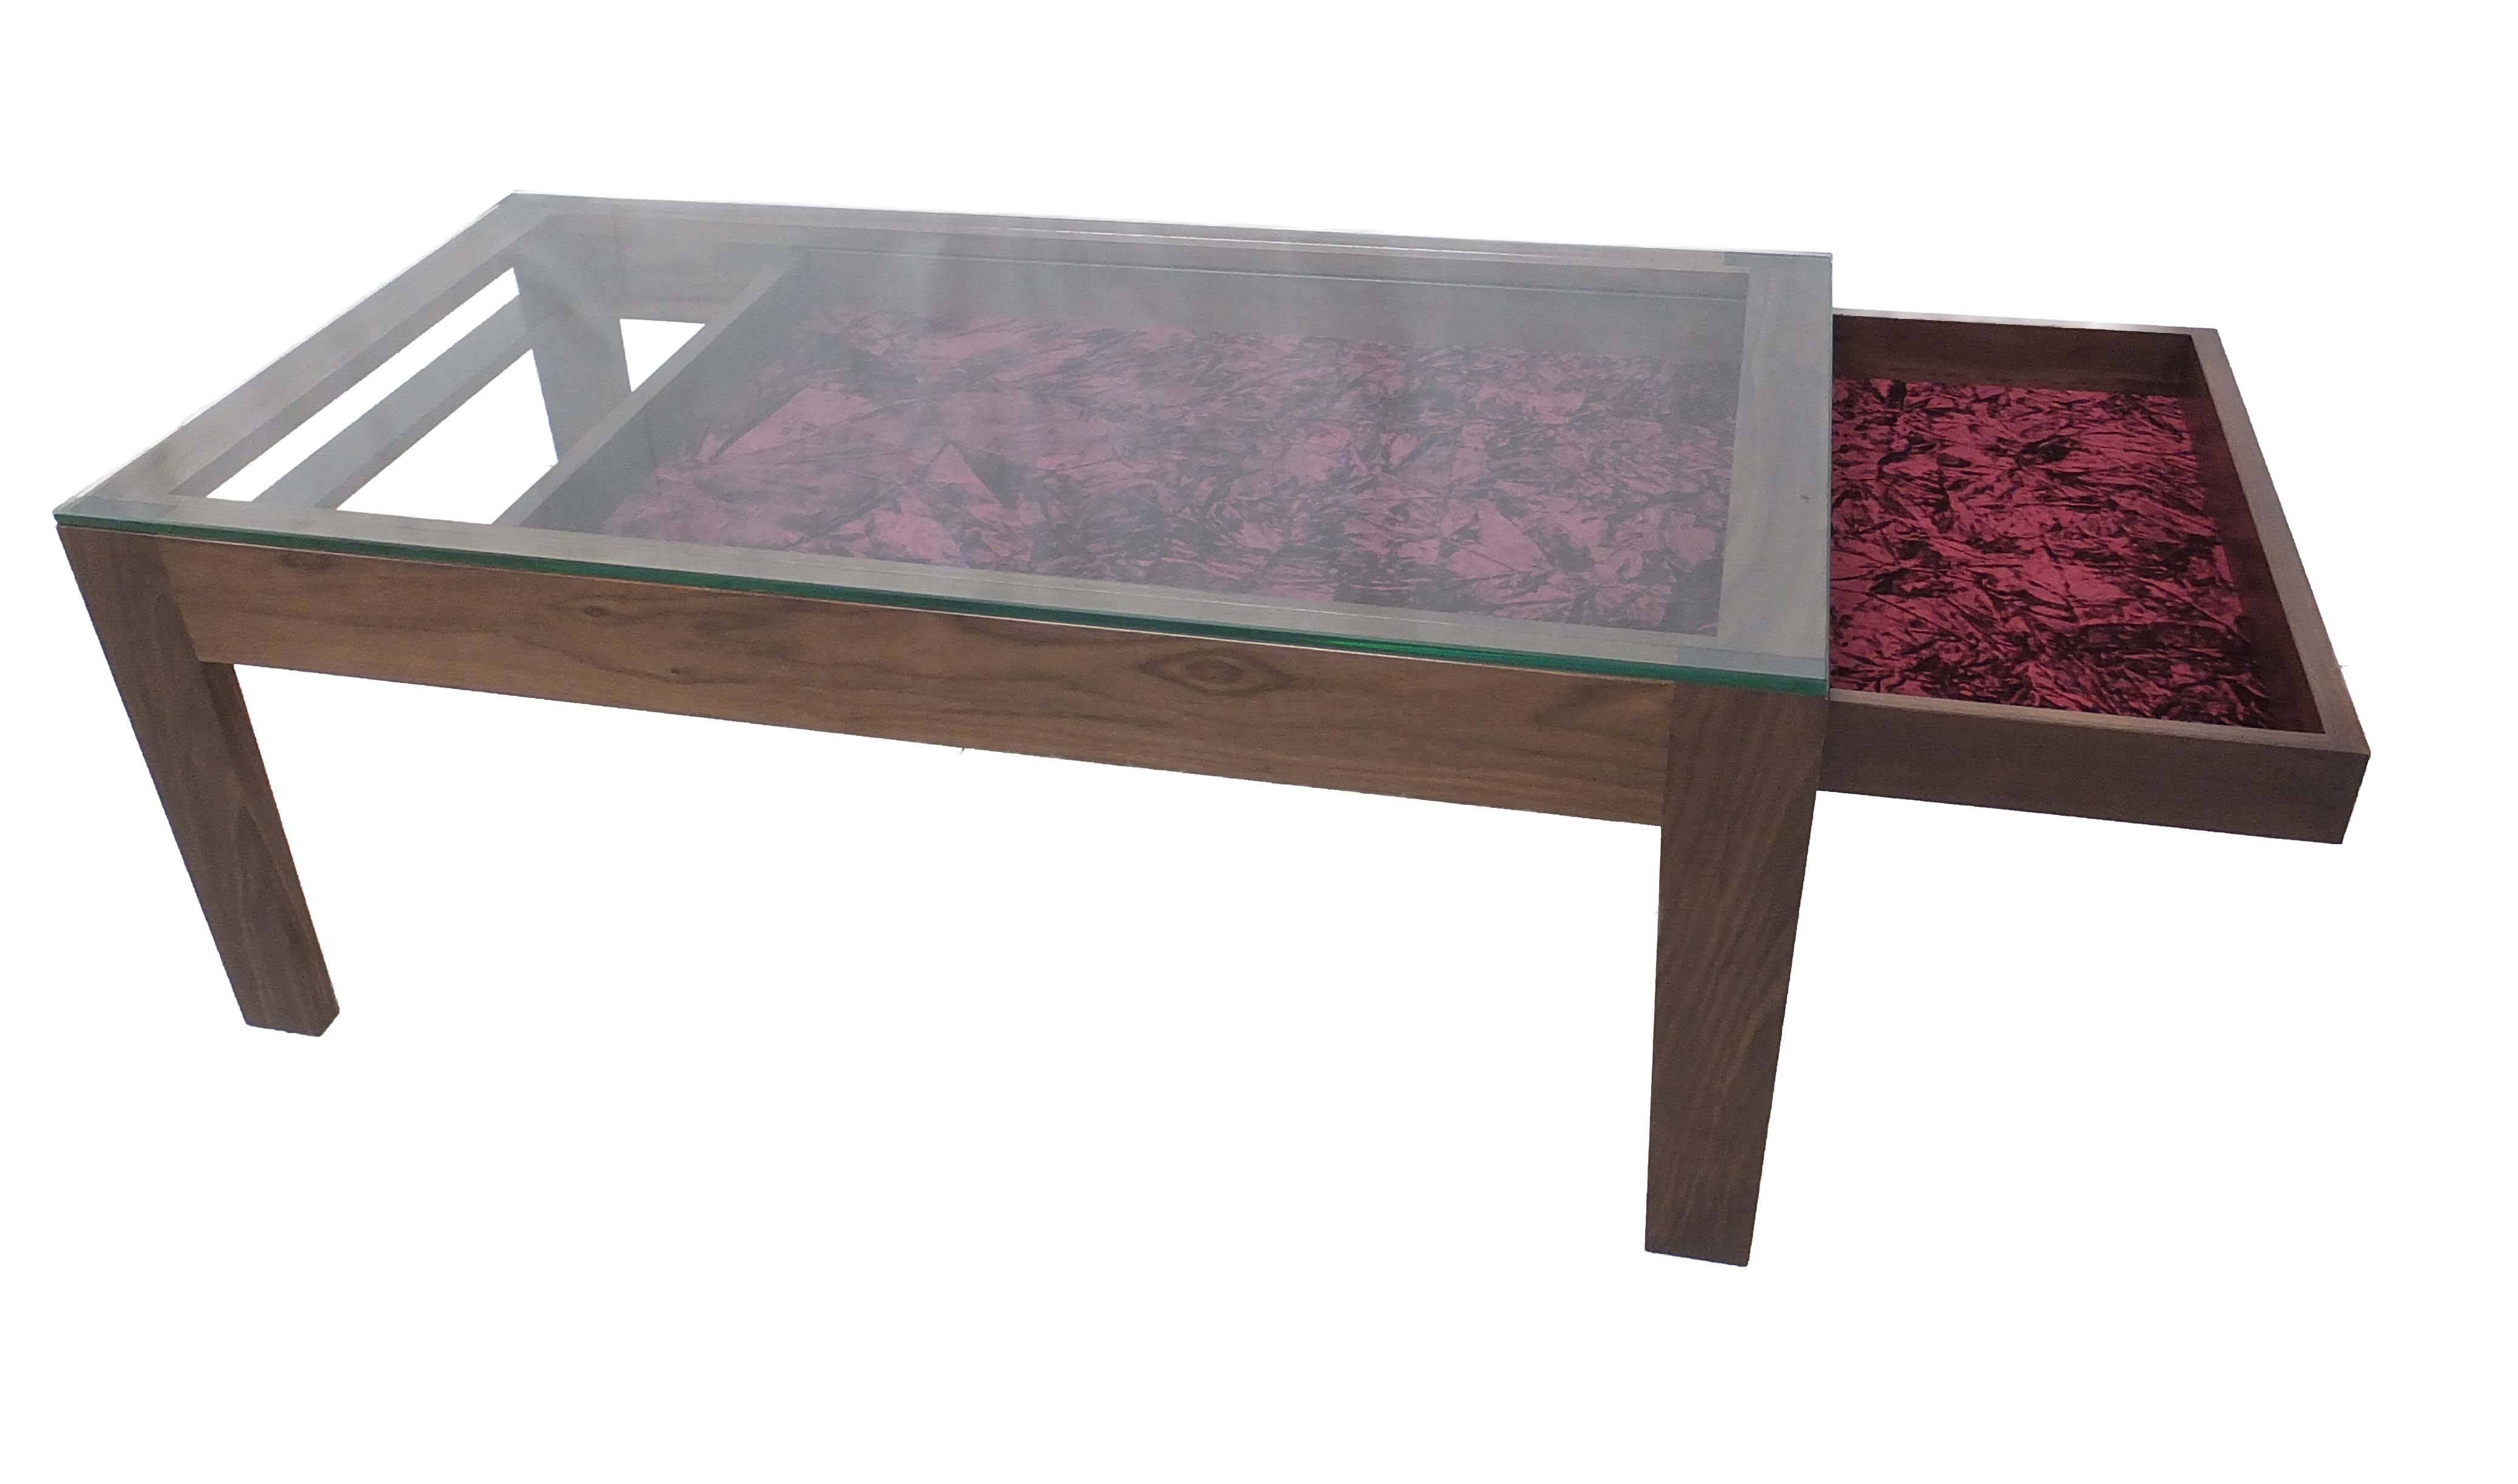 Glass Top Display Coffee Table With Drawers   Home Interior Design Within Glass Top Display Coffee Tables With Drawers (Photo 1 of 30)